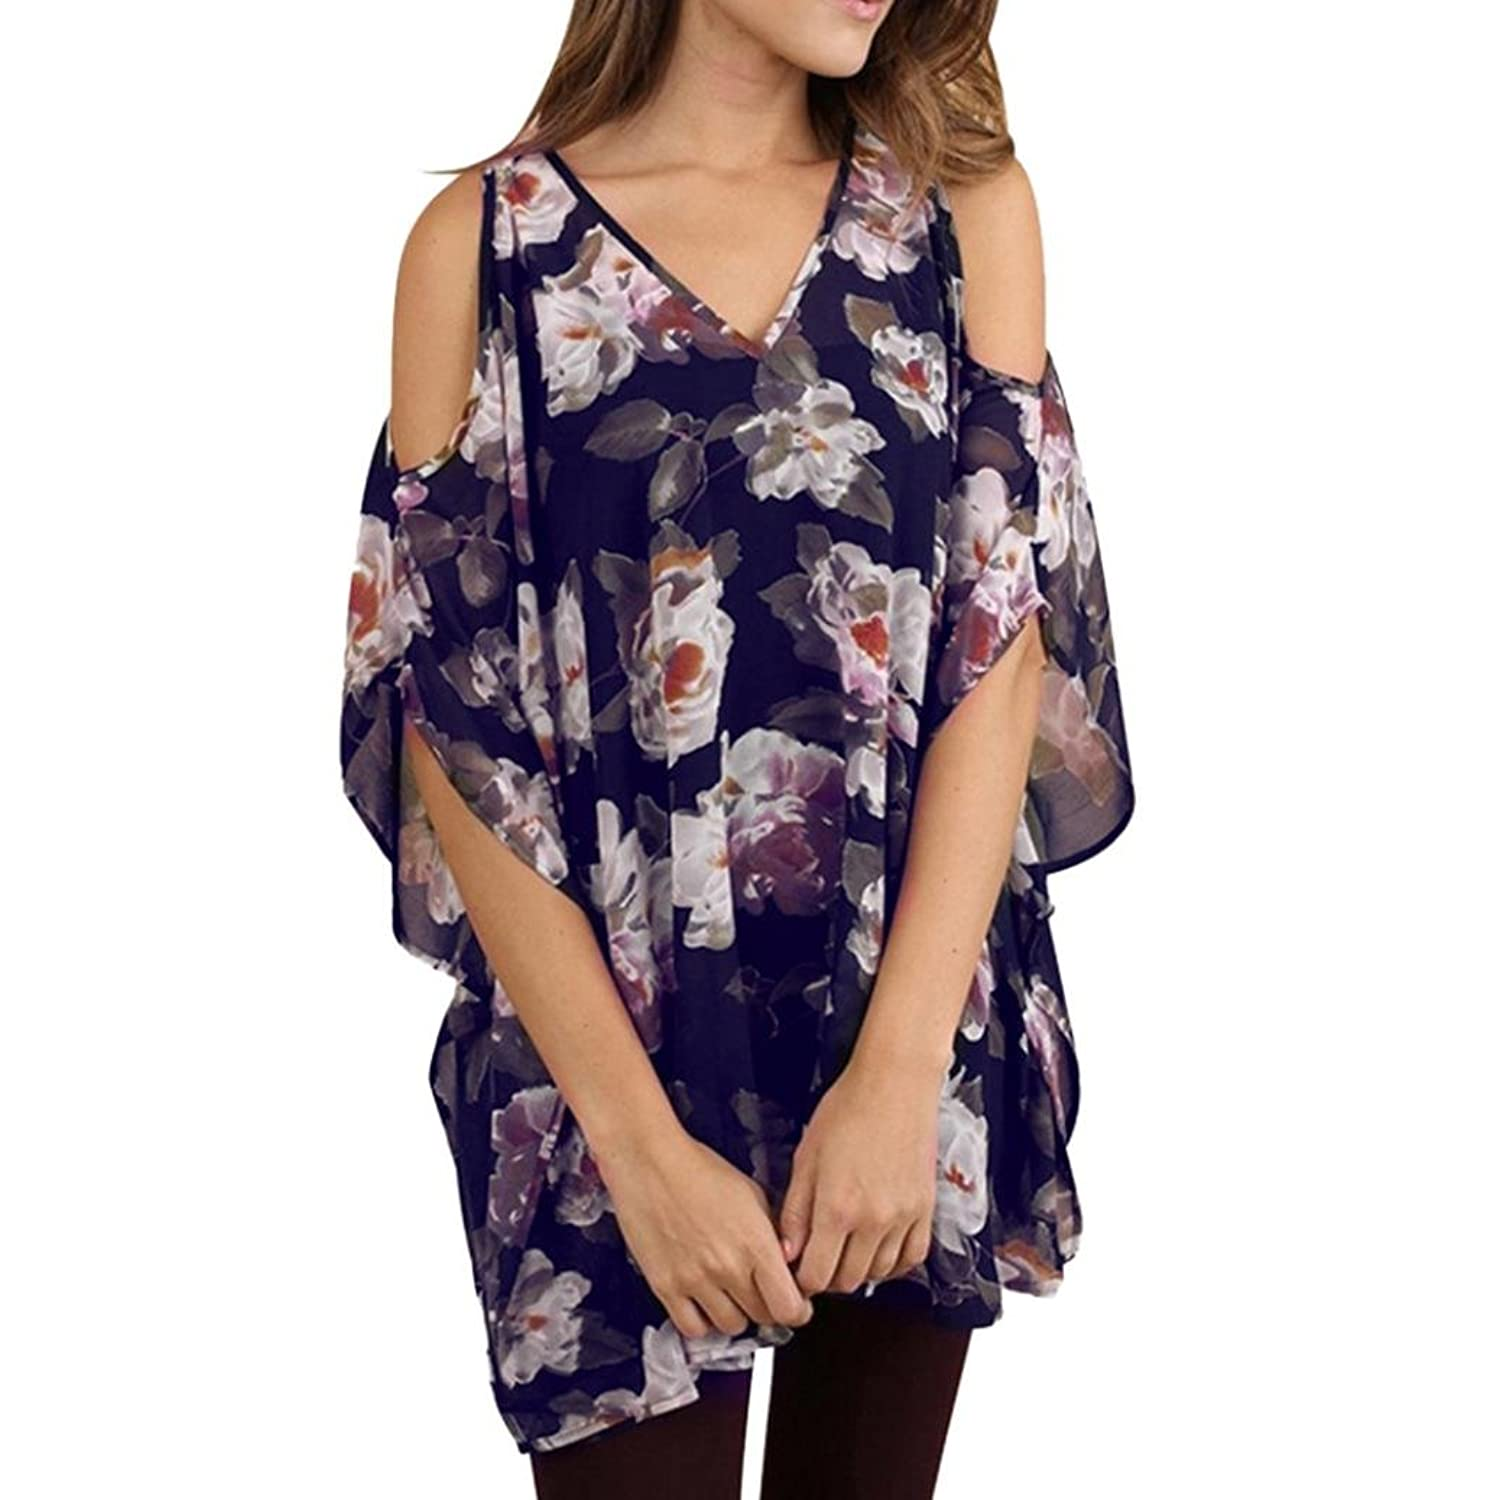 13d2668f8d1ae0 Cold Shoulder Short Sleeve T Shirts V Neck Tops Casual Criss Cross Tunic  Blouse Womens Shirts Casual Tee Shirts V Neck Short Sleeve Button up Loose  Fits ...